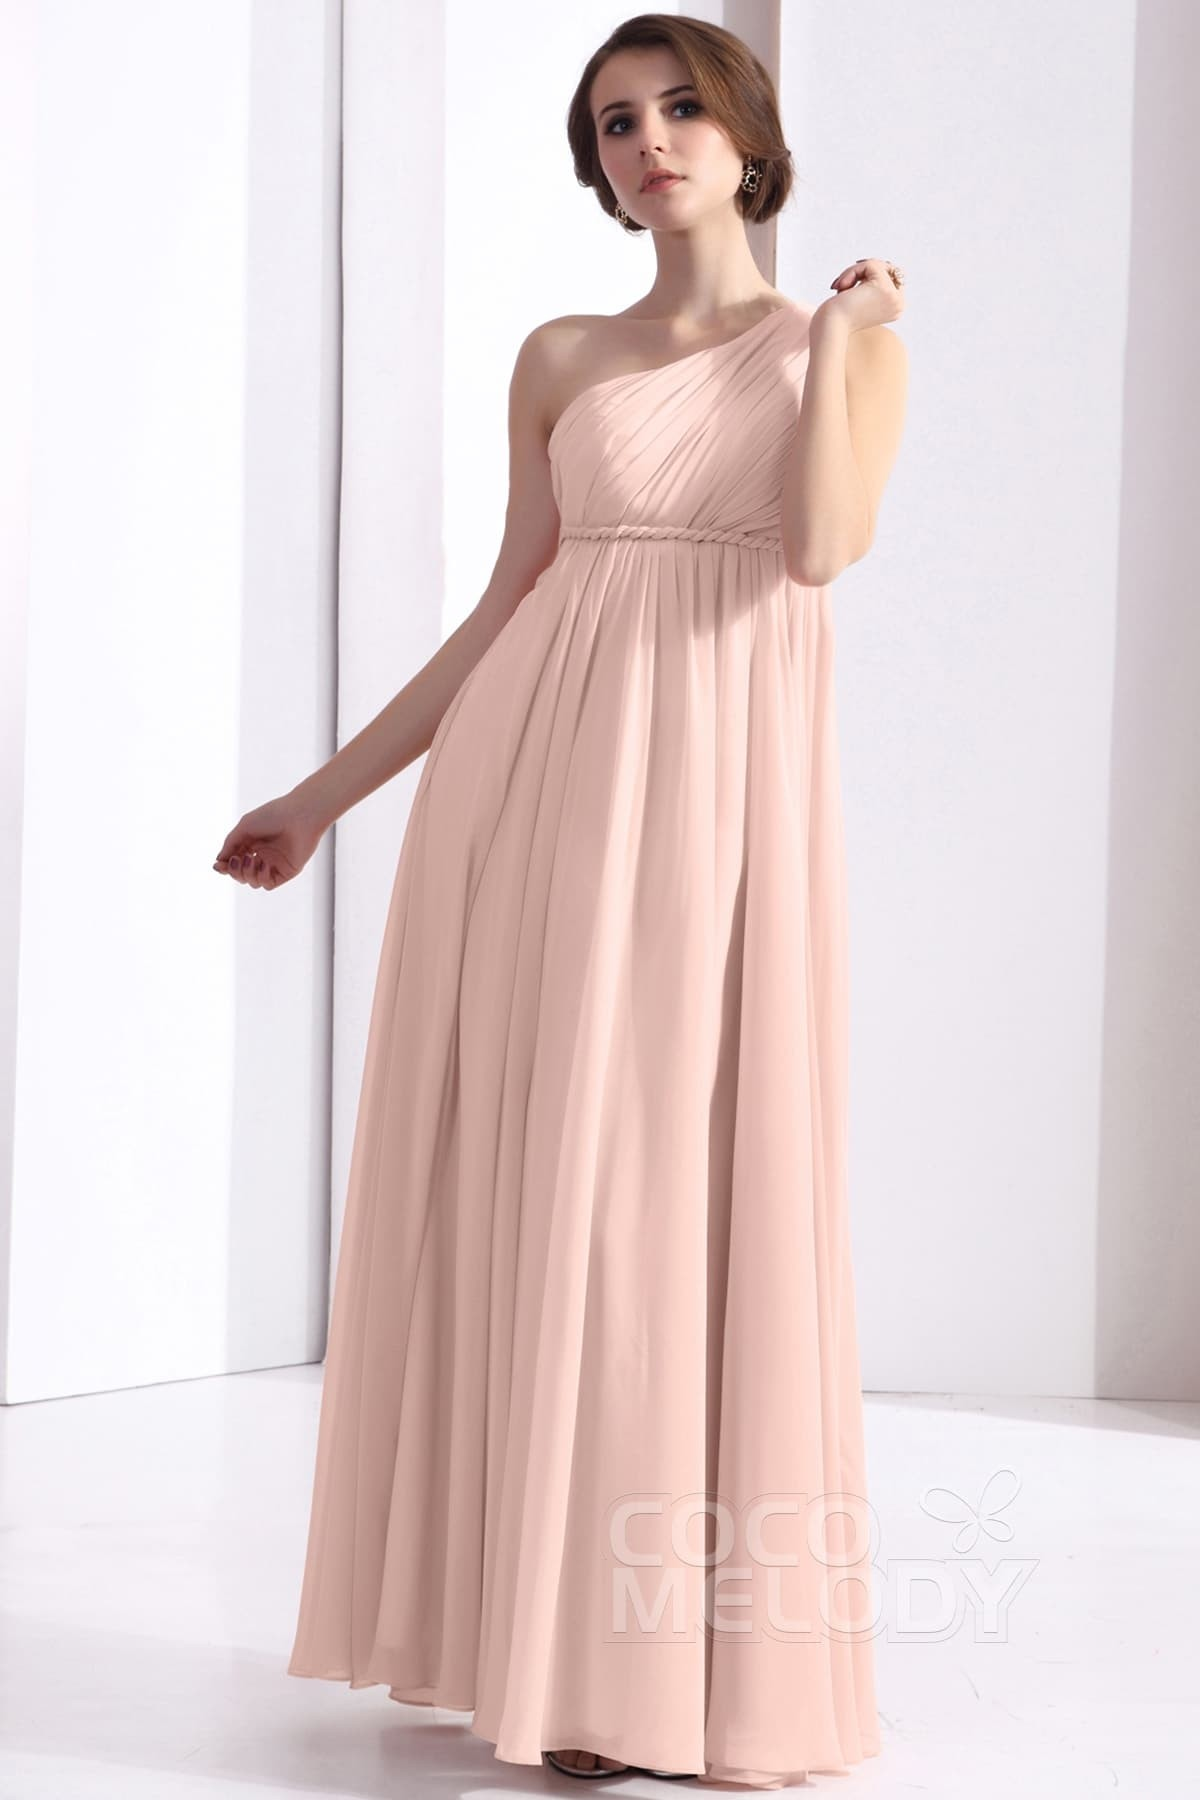 Sheath-Column Floor Length Chiffon Dress COSF1300D | Cocomelody